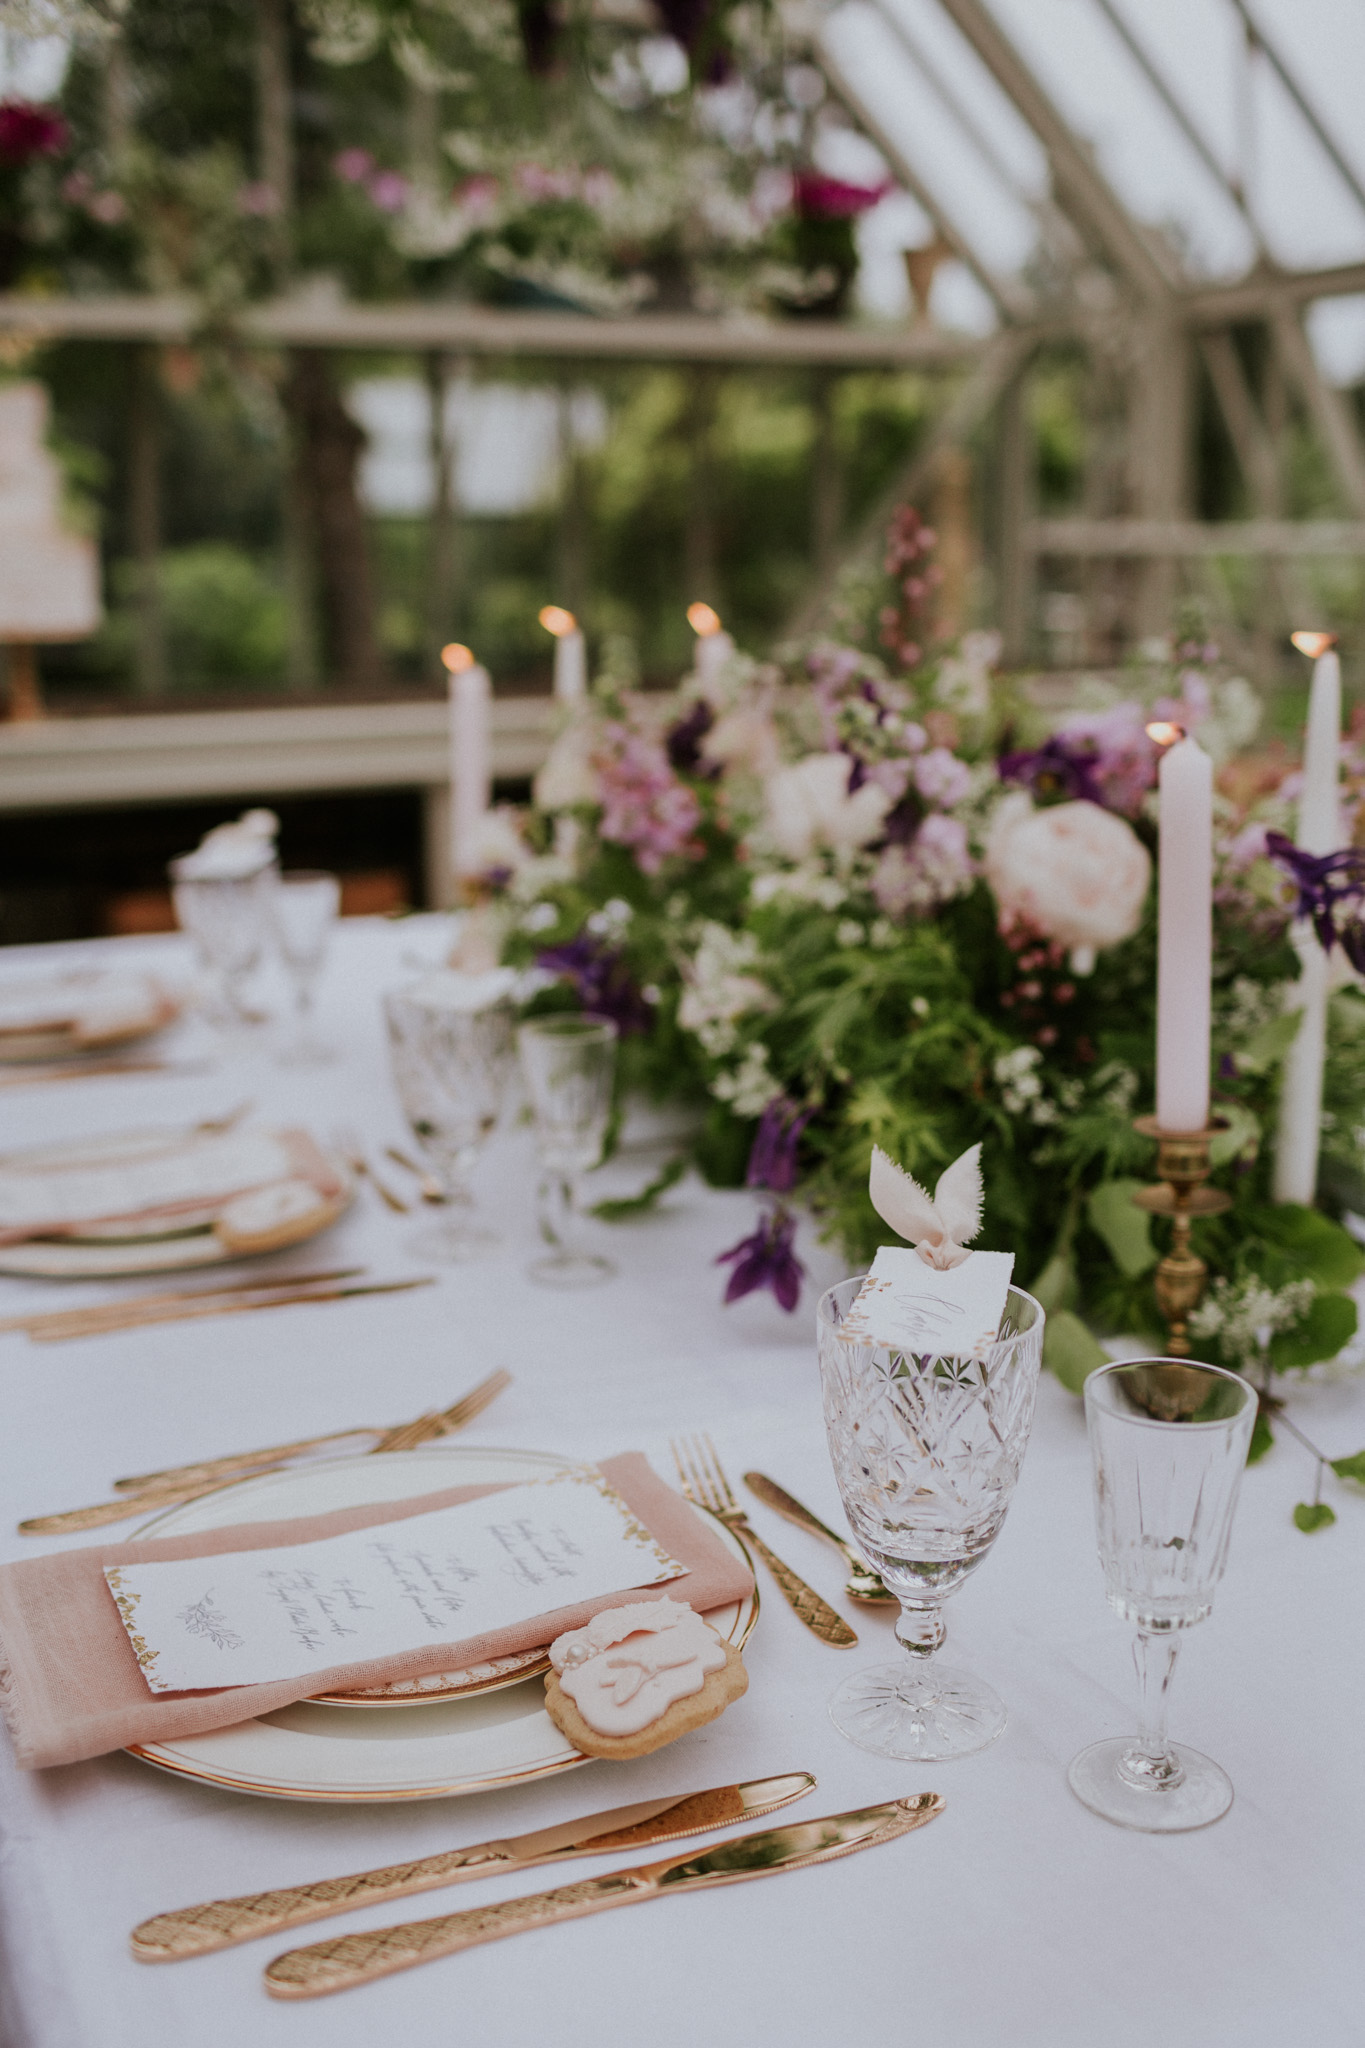 The florals were brought in as a centrepiece, surrounded by thoughtfully designed stationery, wedding favour biscuits and botanically dyed linen.